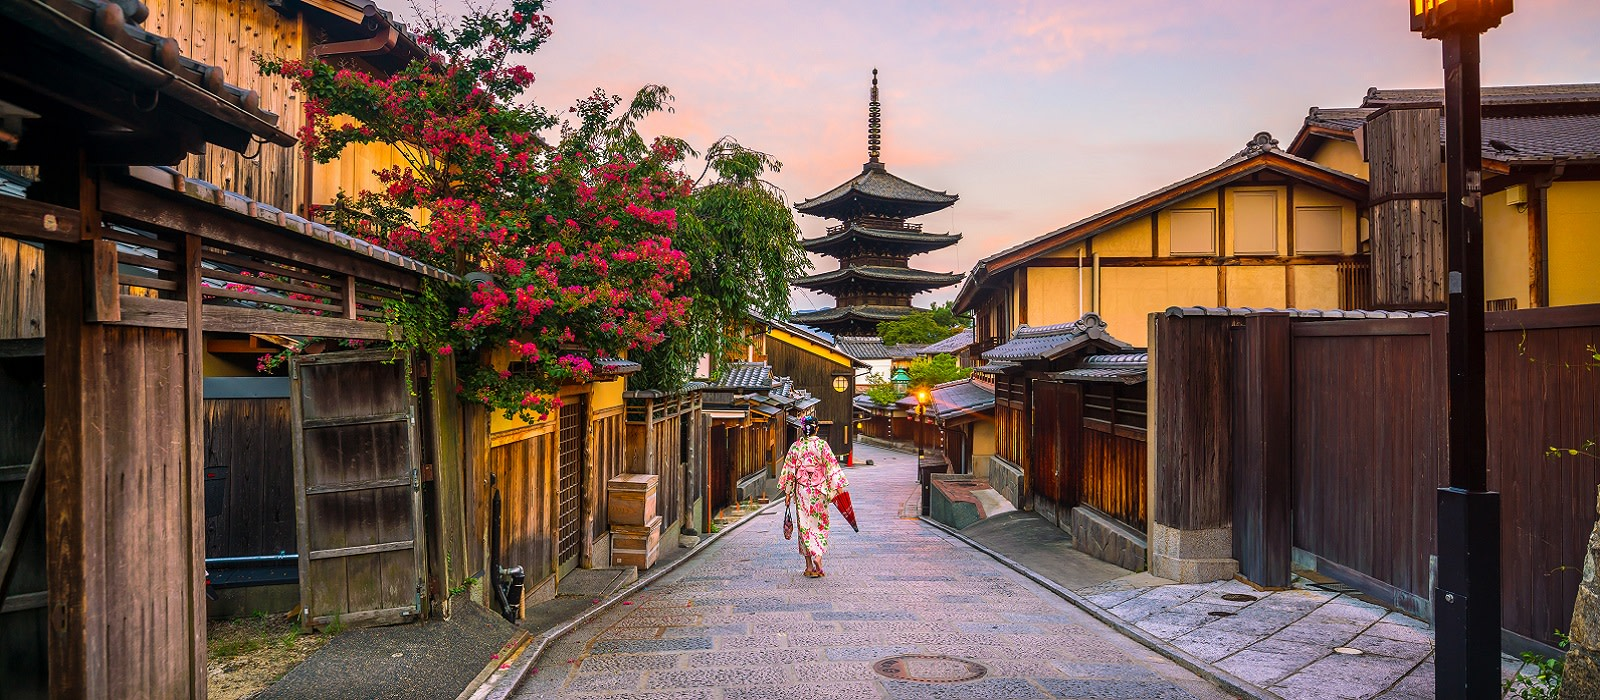 Japan for Beginners: Tokyo, Kyoto and Mount Fuji Tour Trip 1